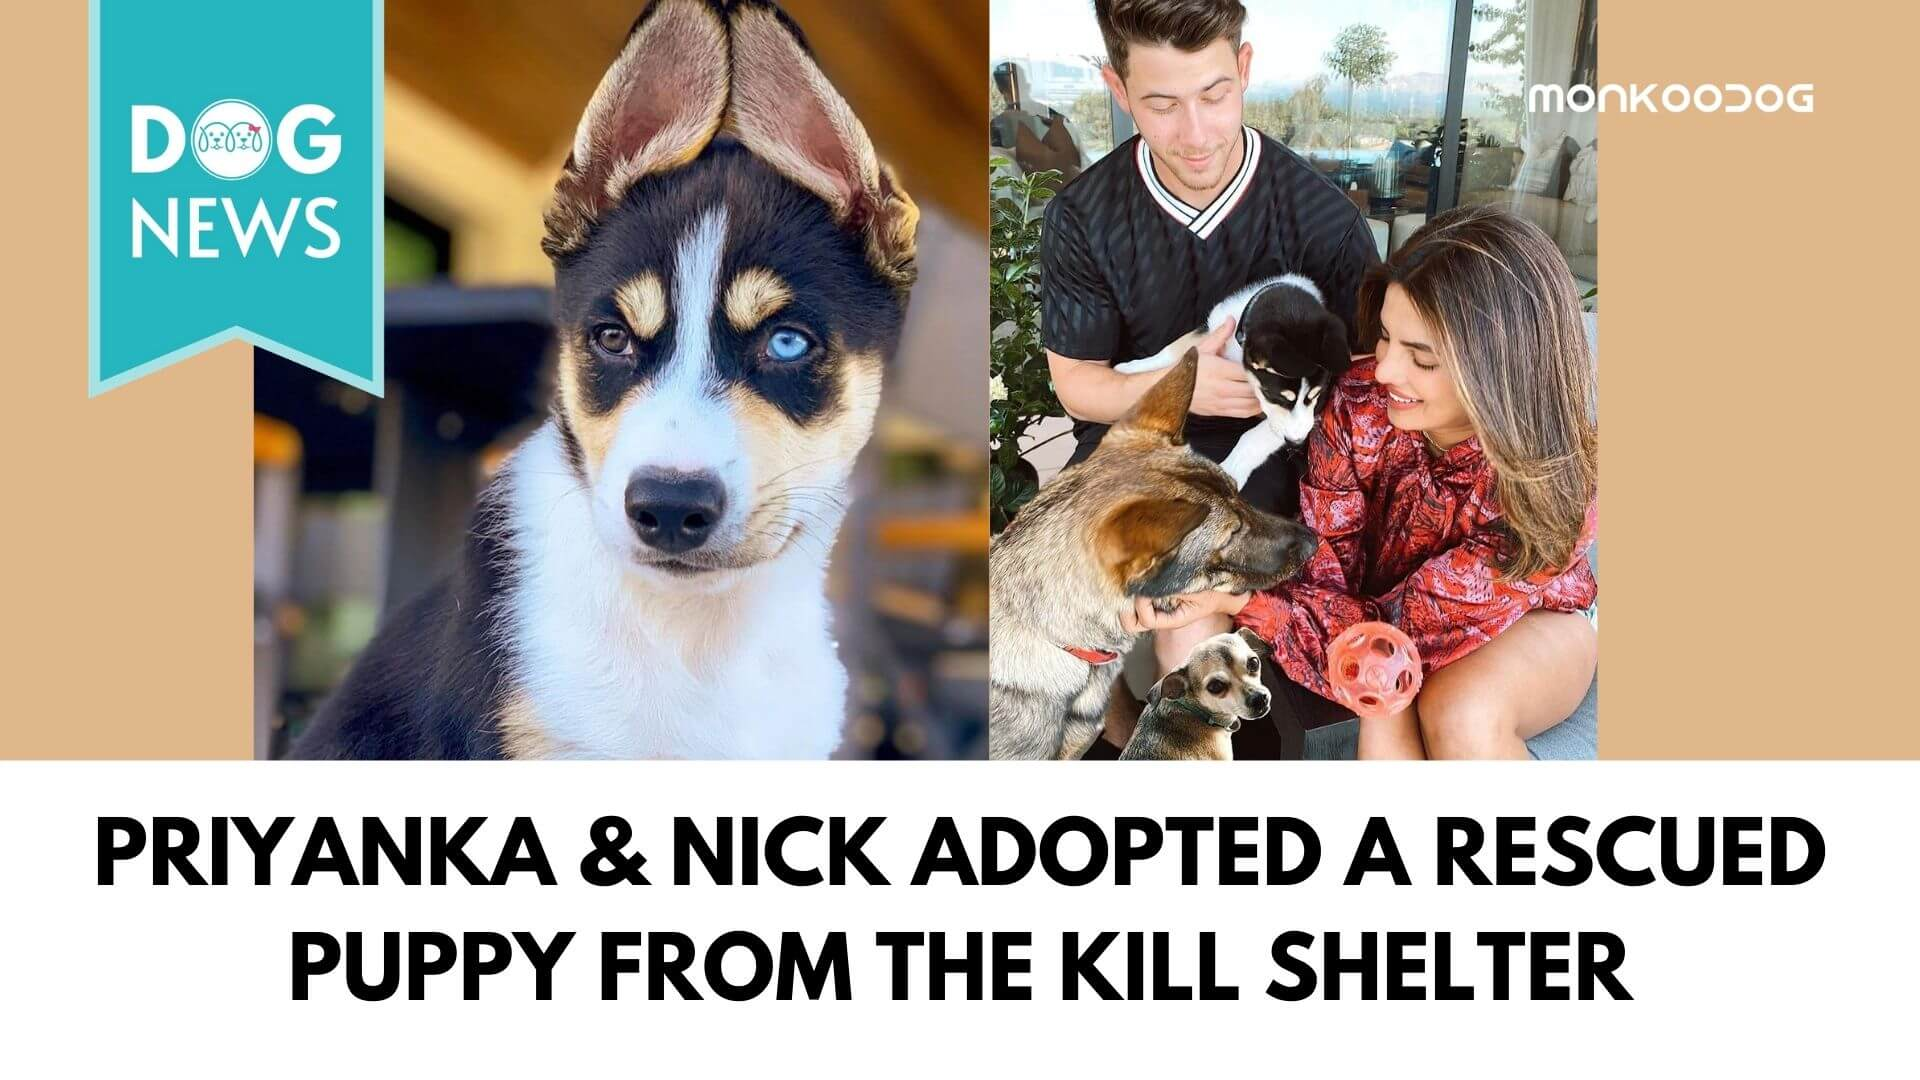 Priyanka & Nick Adopted a Rescued puppy from the kill shelter